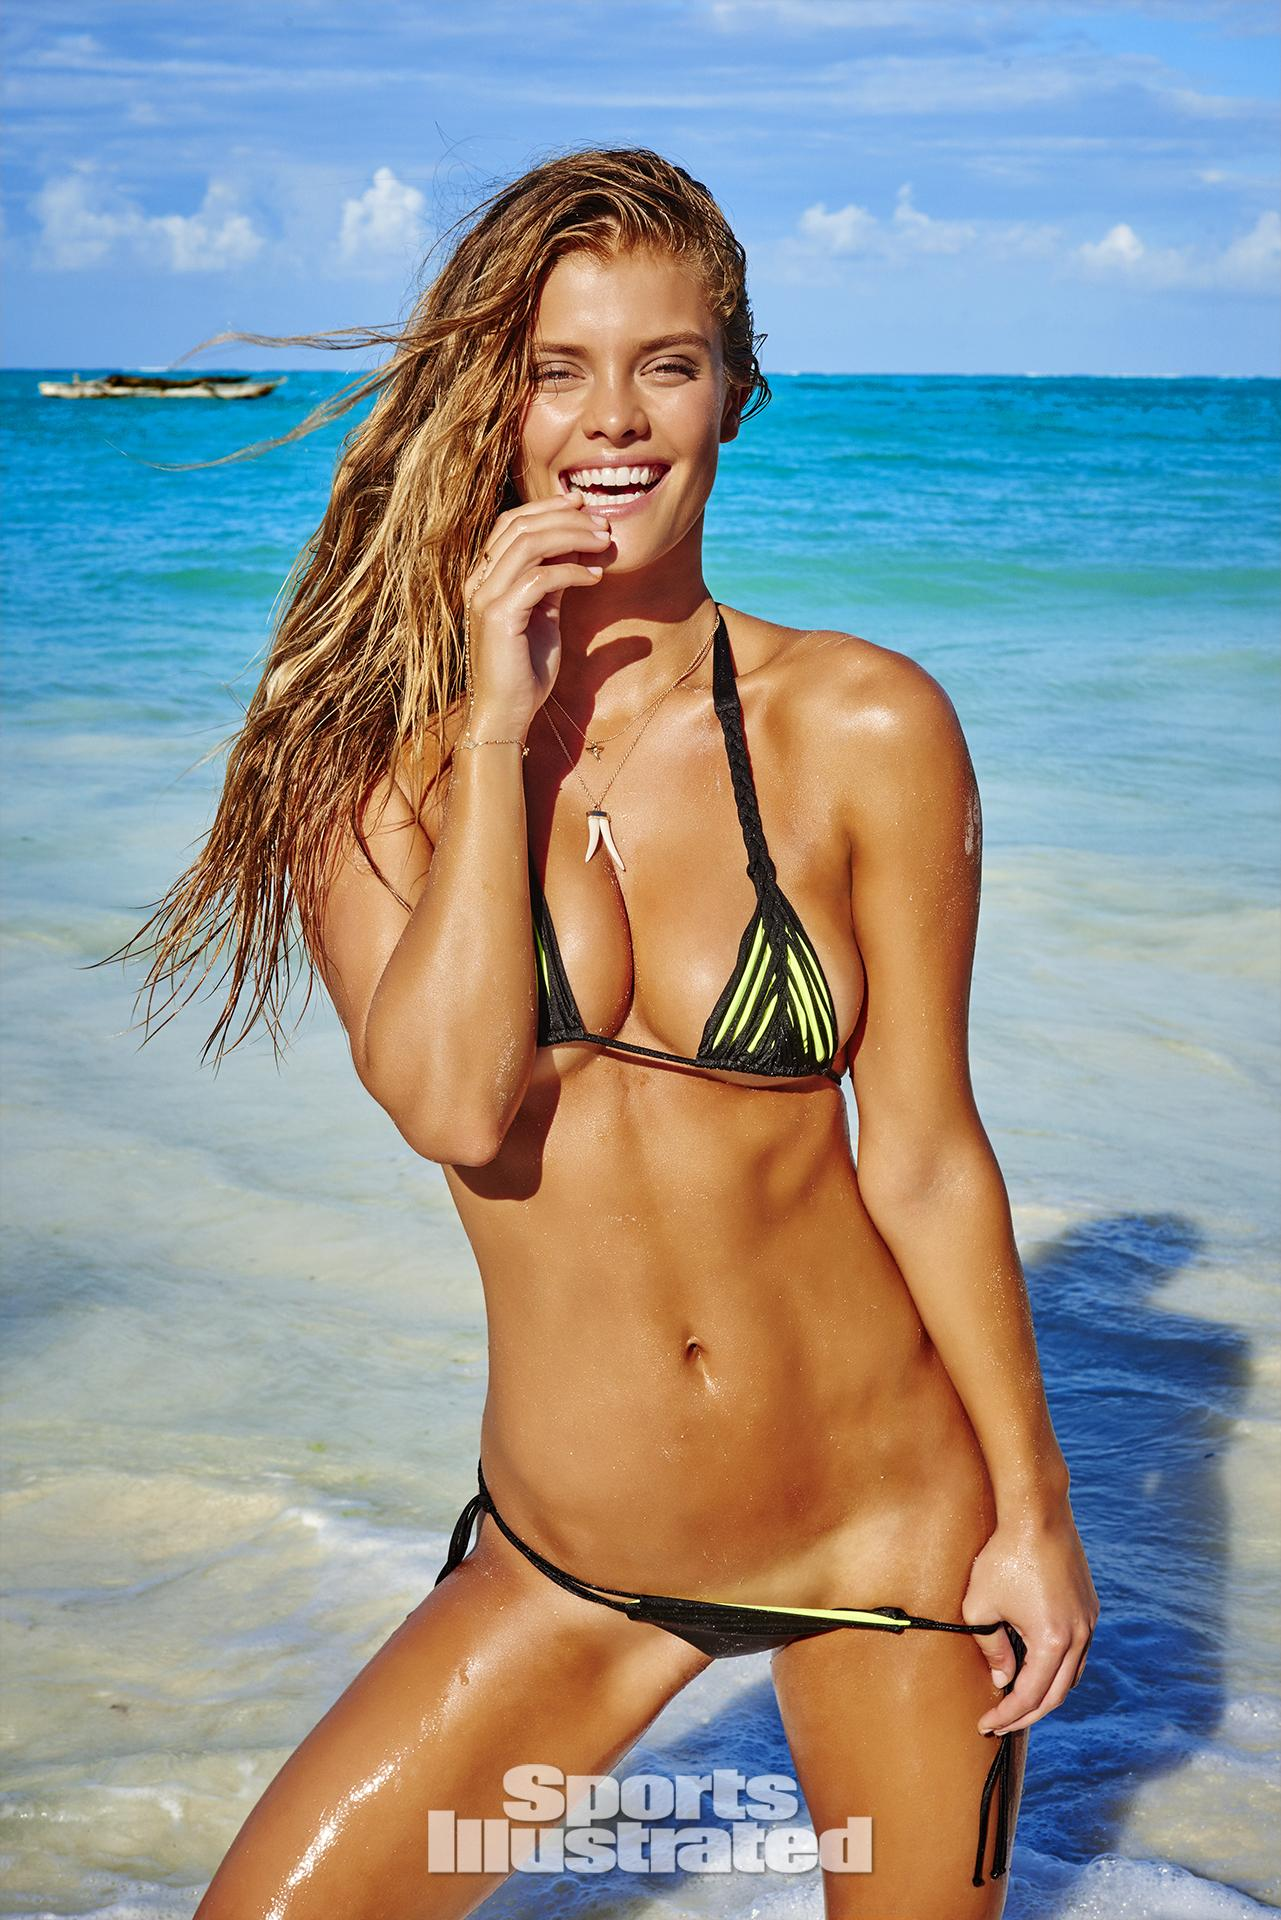 nina-agdal-2016-sexy-topless-photo-sports-illustrated 5